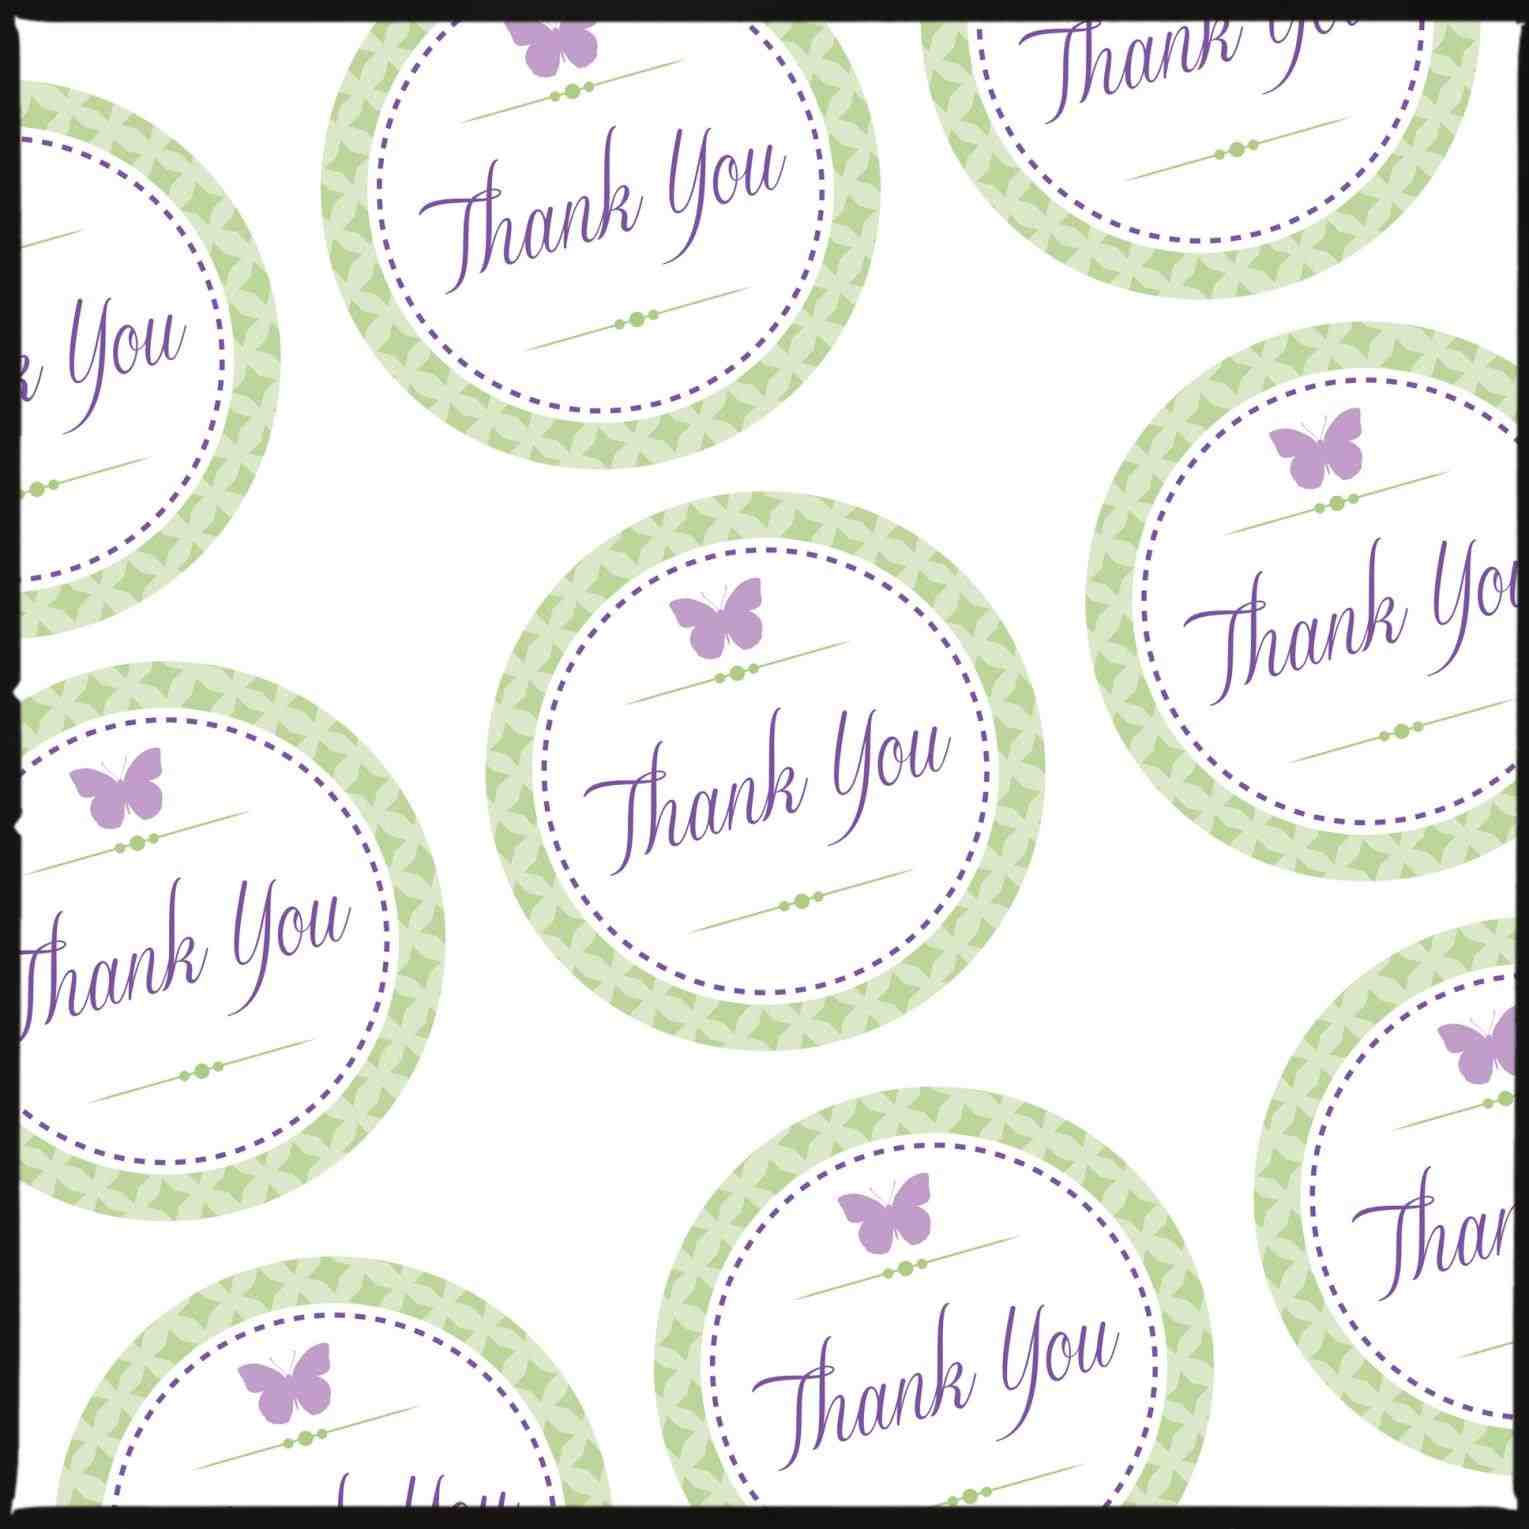 A-Download-Thank-Free-Printable-Thank-You-Tags-Template-You-Tags-For - Free Printable Thank You Tags Template